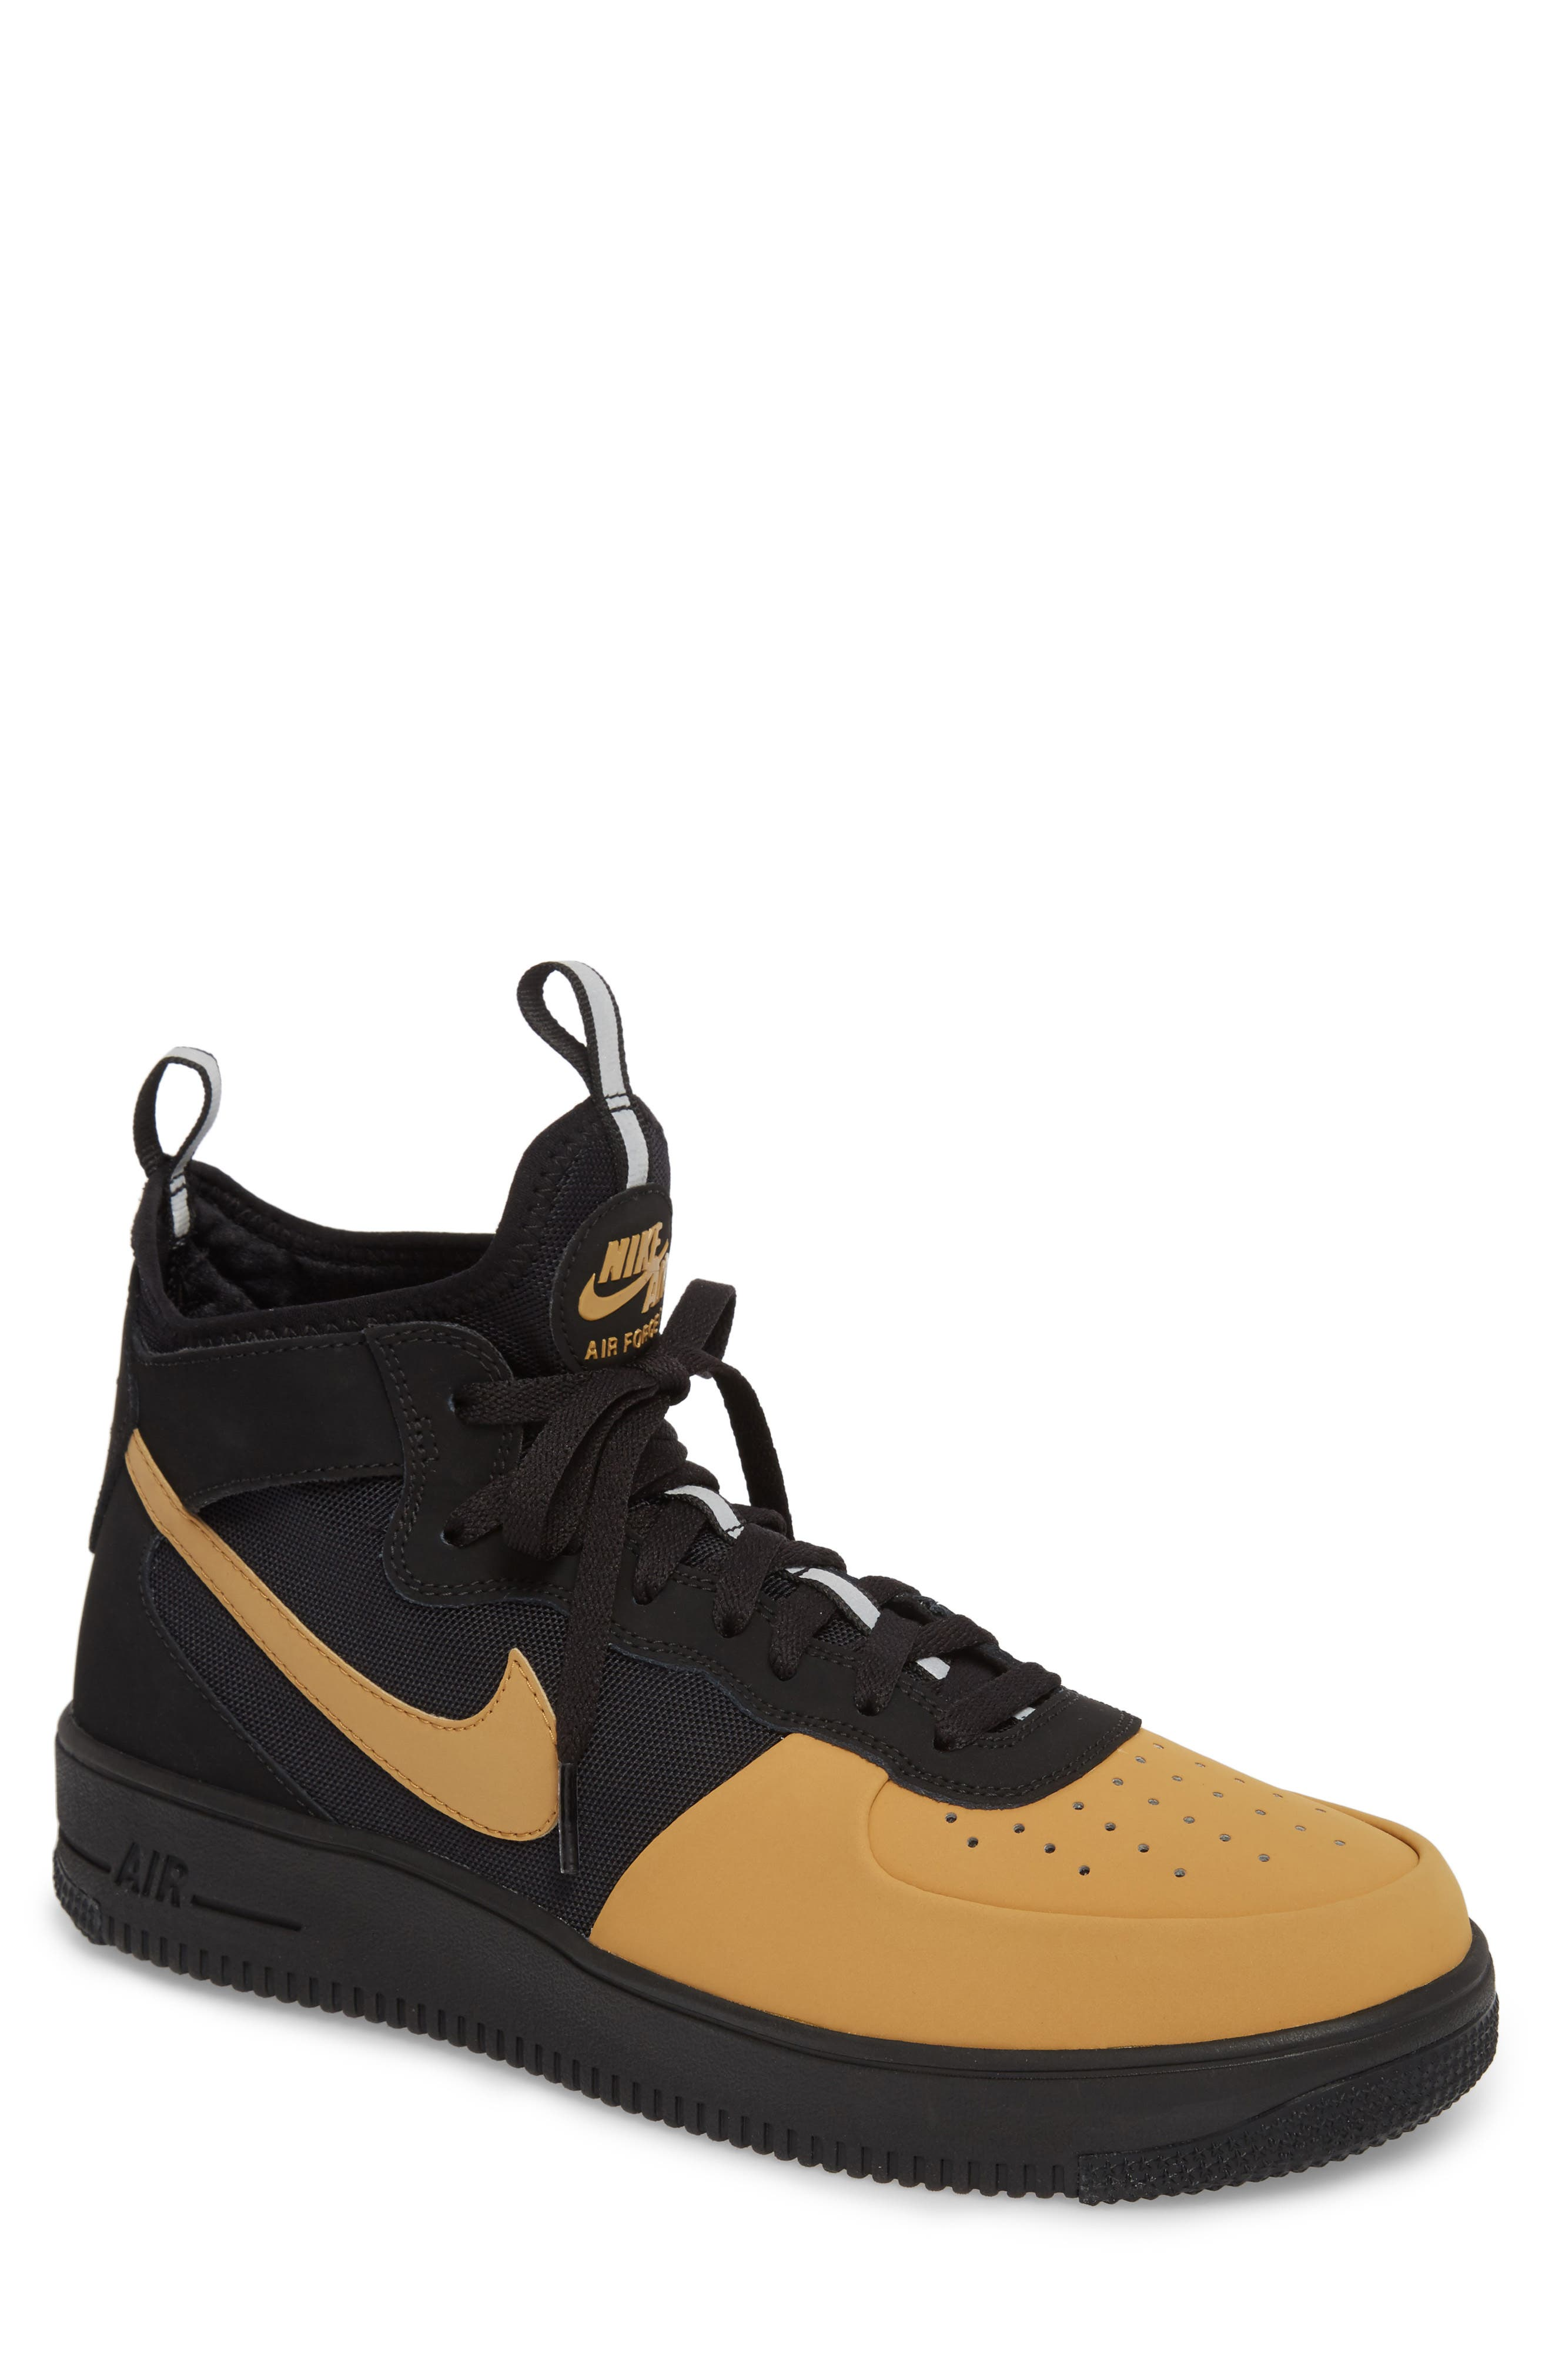 Air Force 1 Ultraforce Mid Tech Sneaker,                         Main,                         color, 002